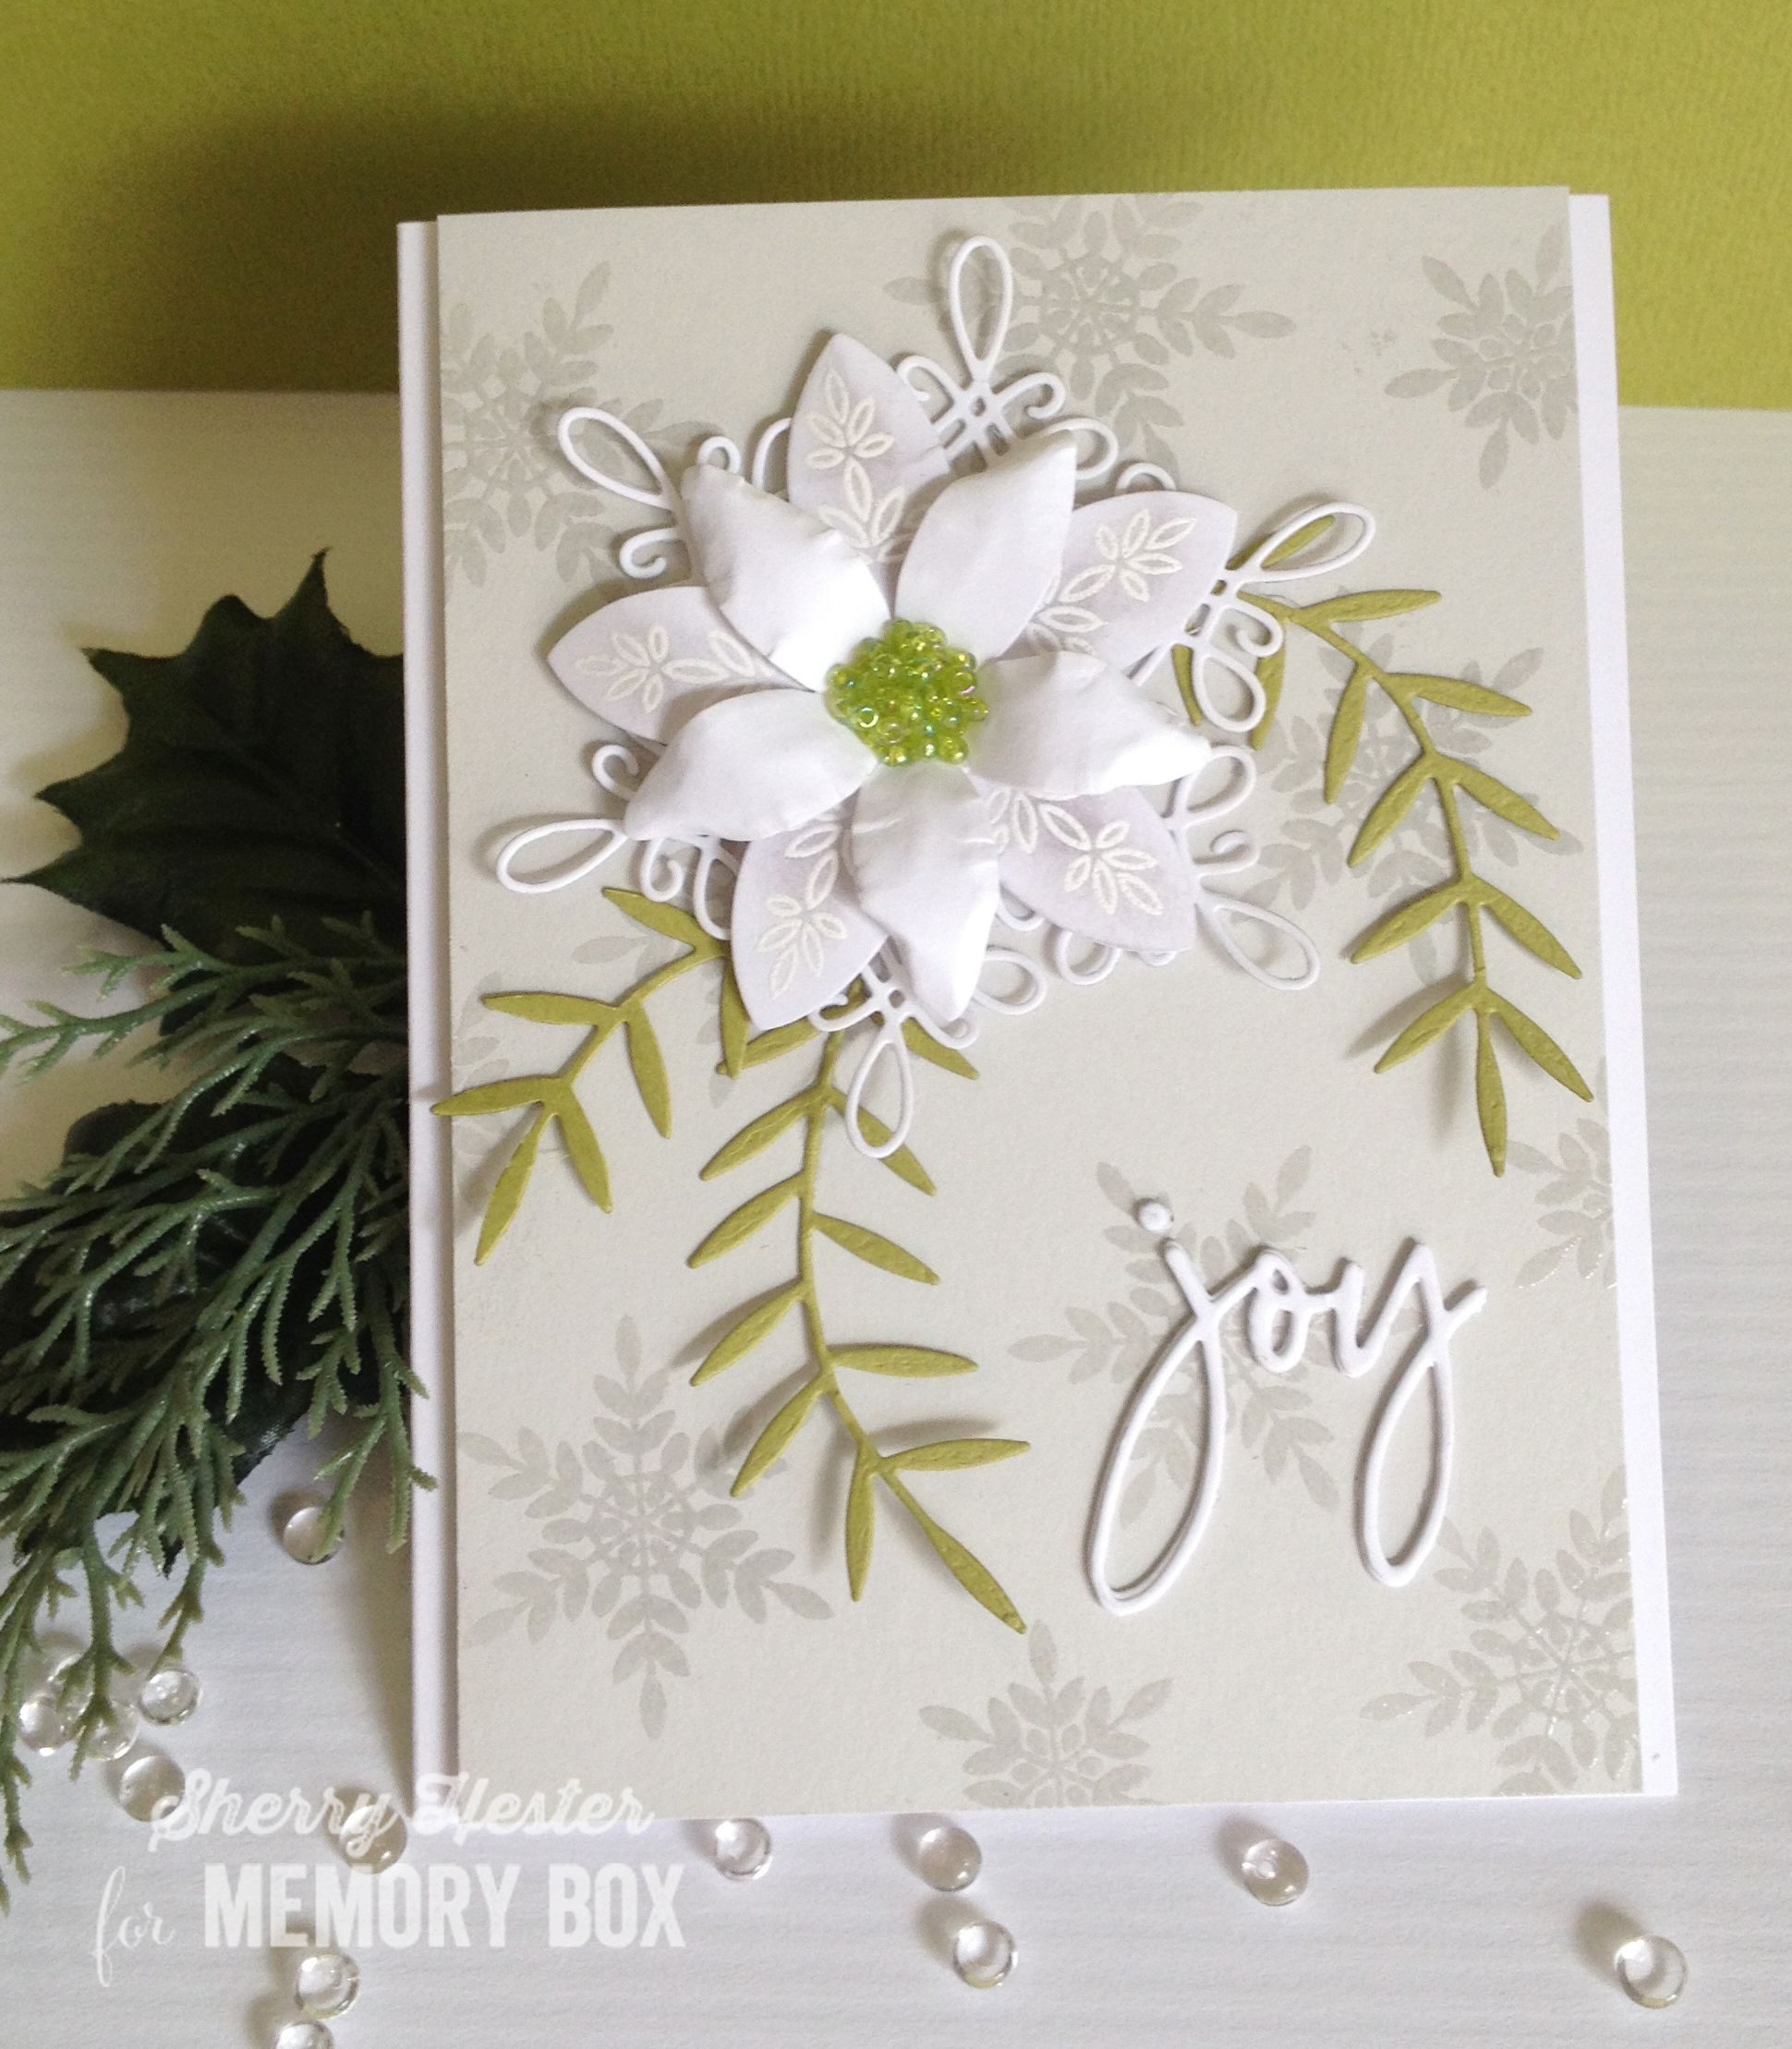 Poinsettia and Snowflakes by Sherry Hester